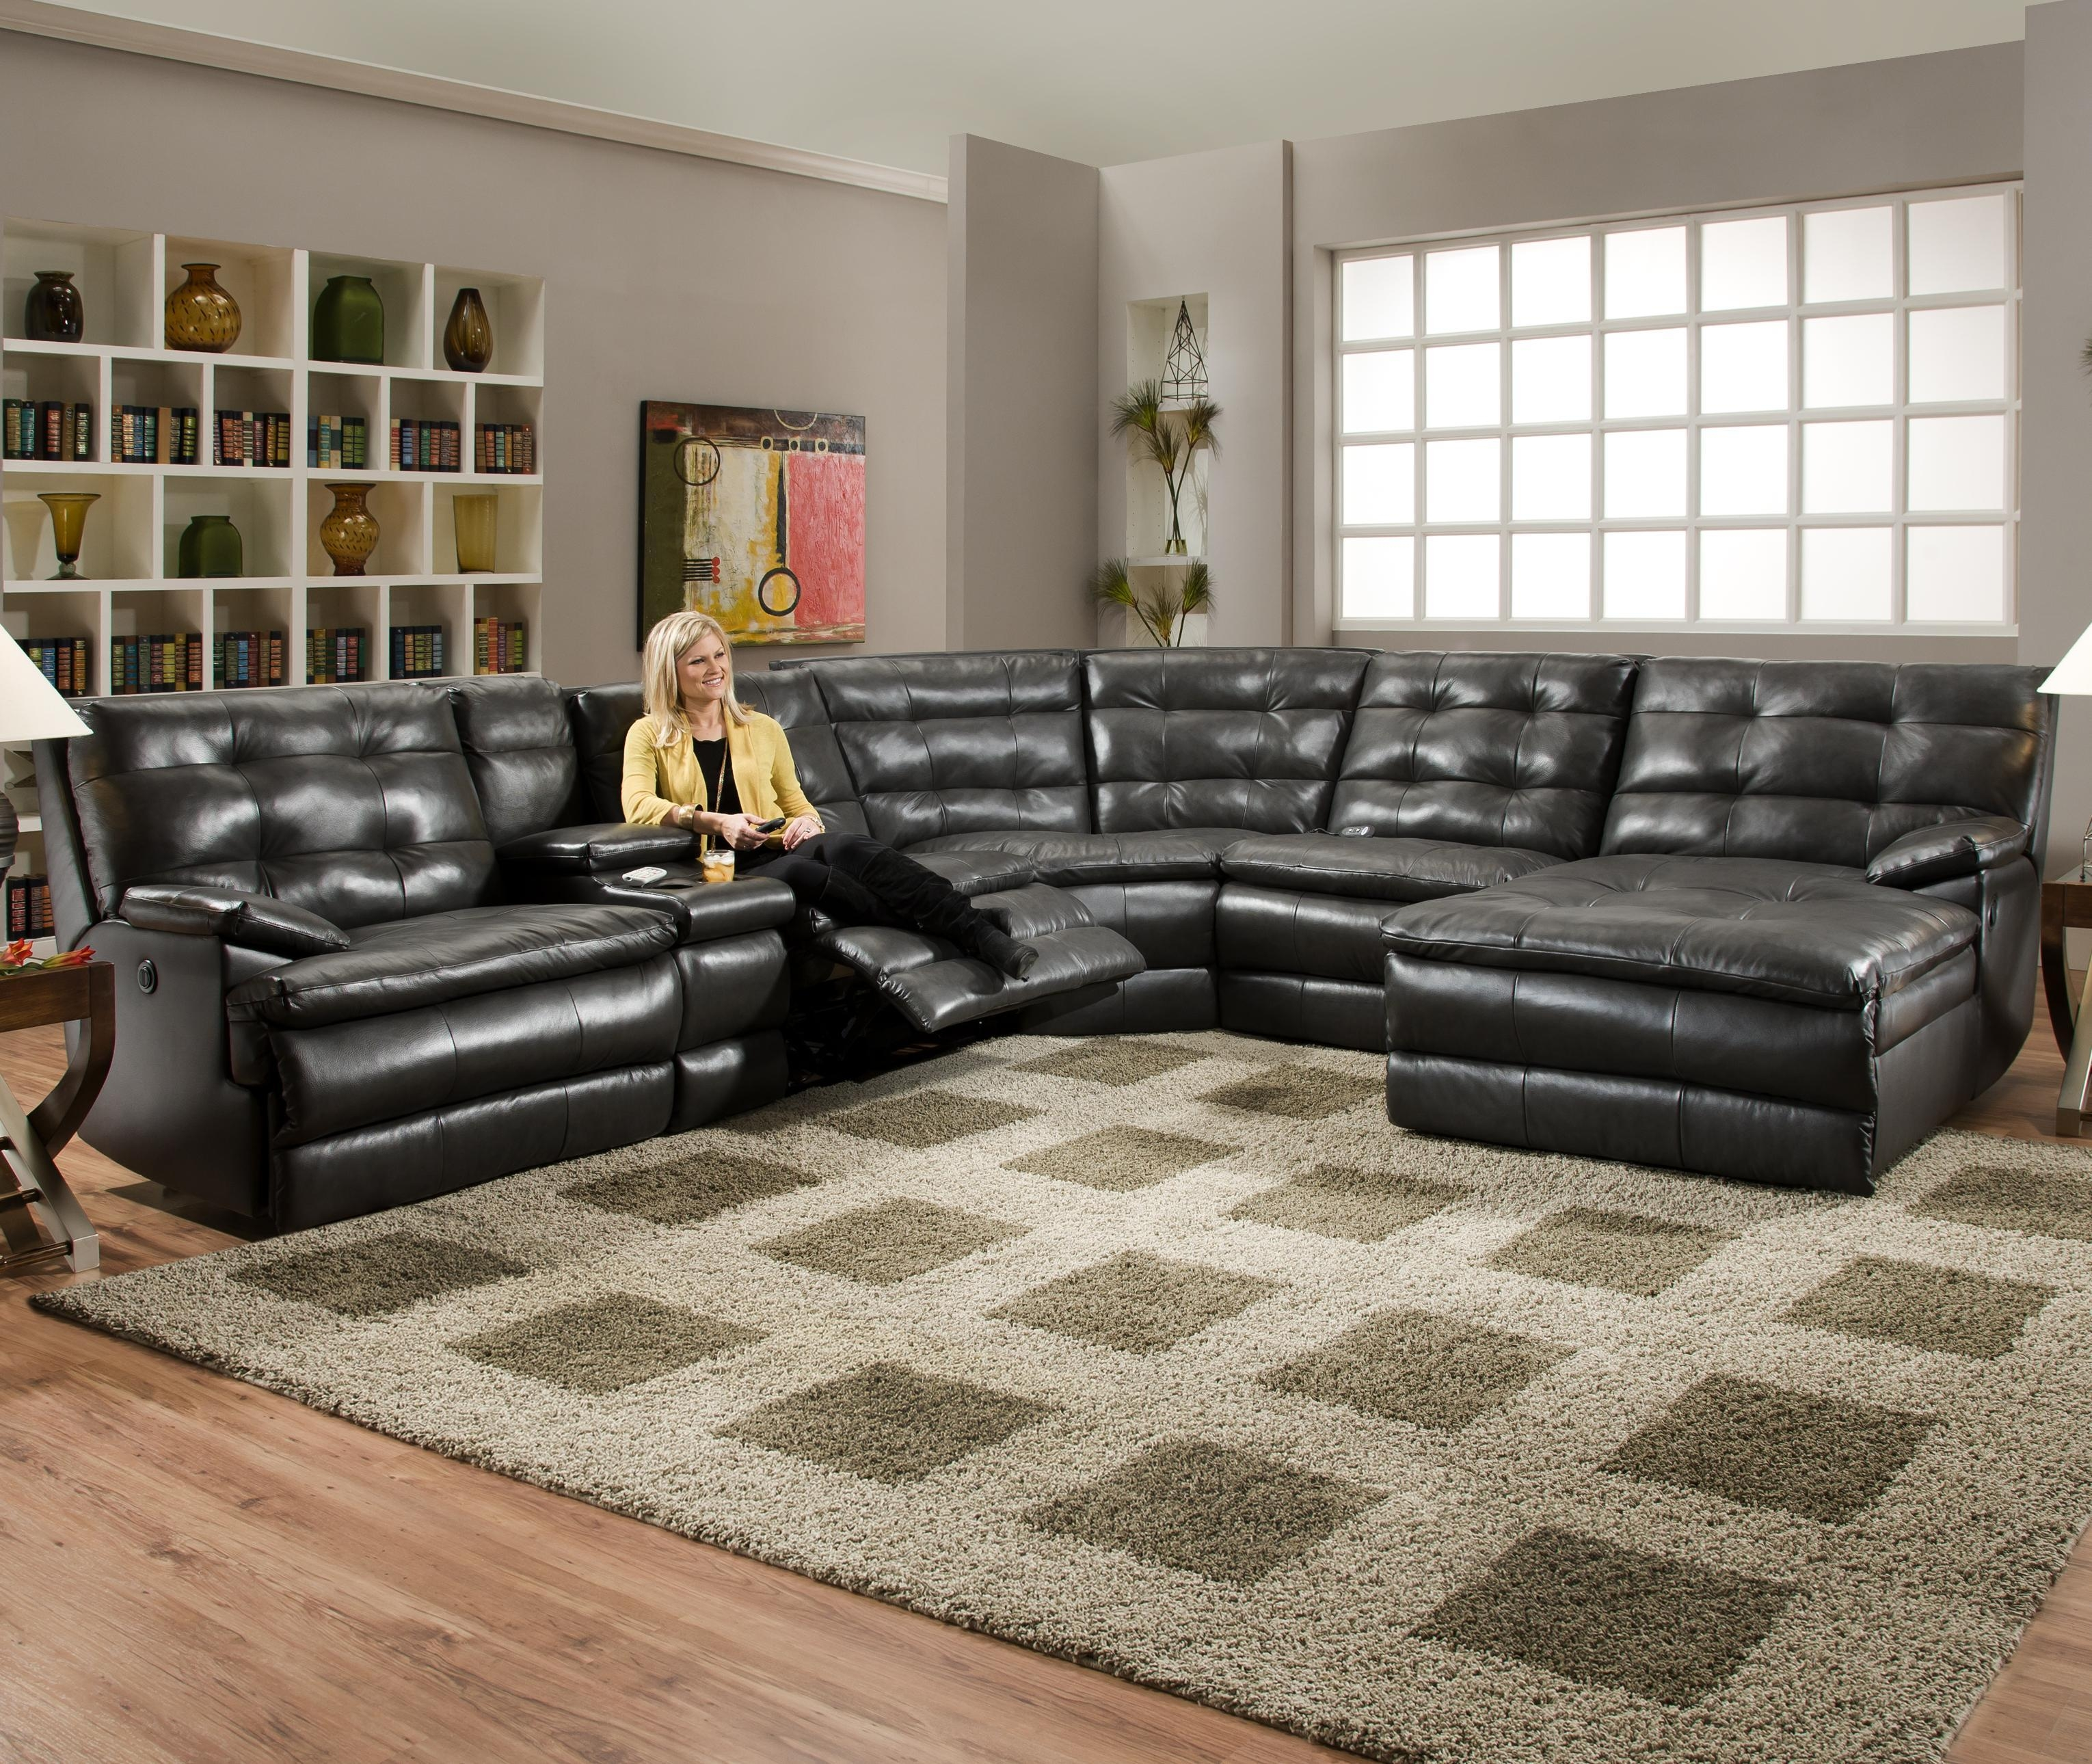 22 ideas of recliner sectional sofas sofa ideas. Black Bedroom Furniture Sets. Home Design Ideas